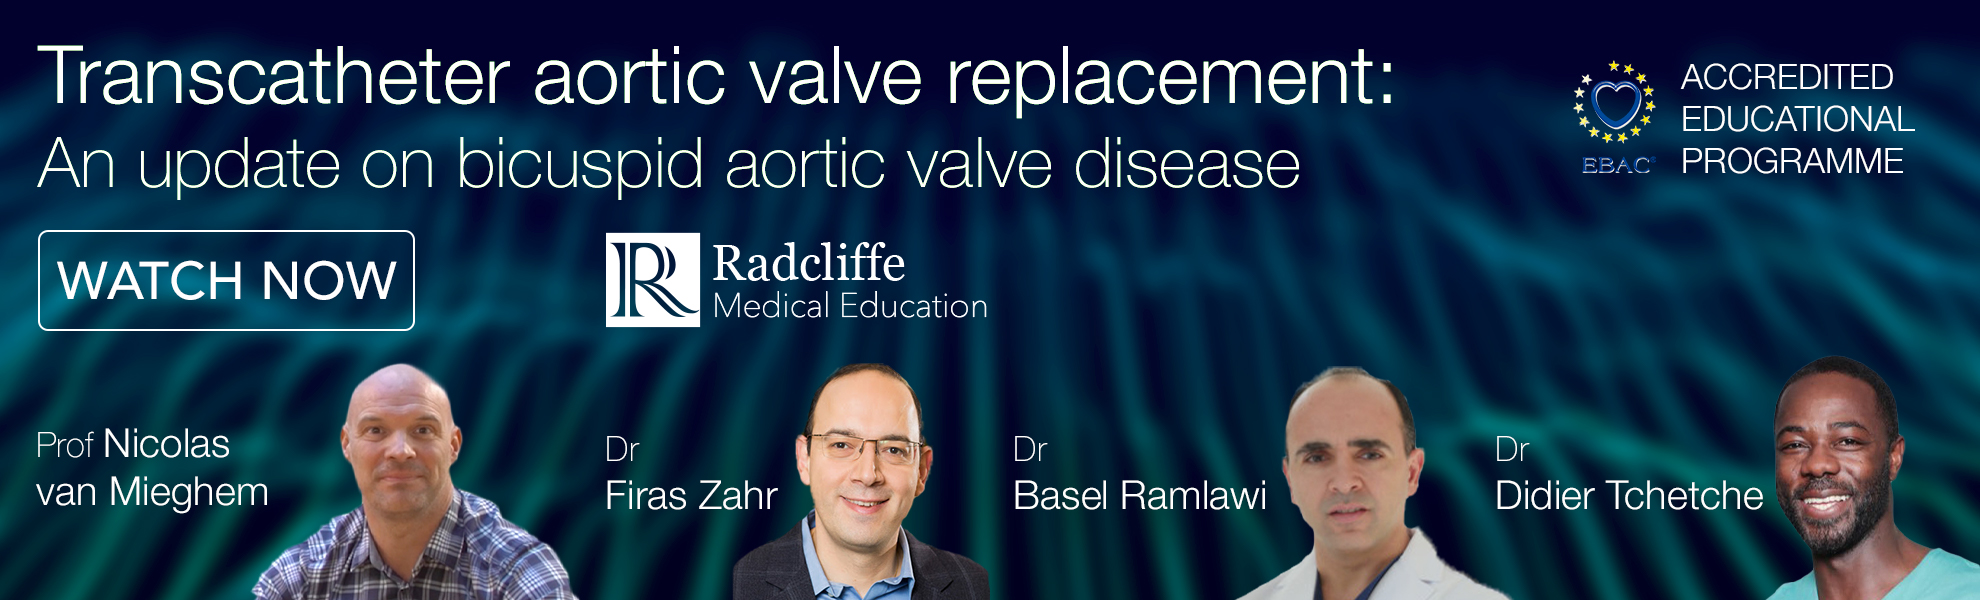 Transcatheter Aortic Valve Replacement: An Update in Bicuspid Aortic Valve Disease